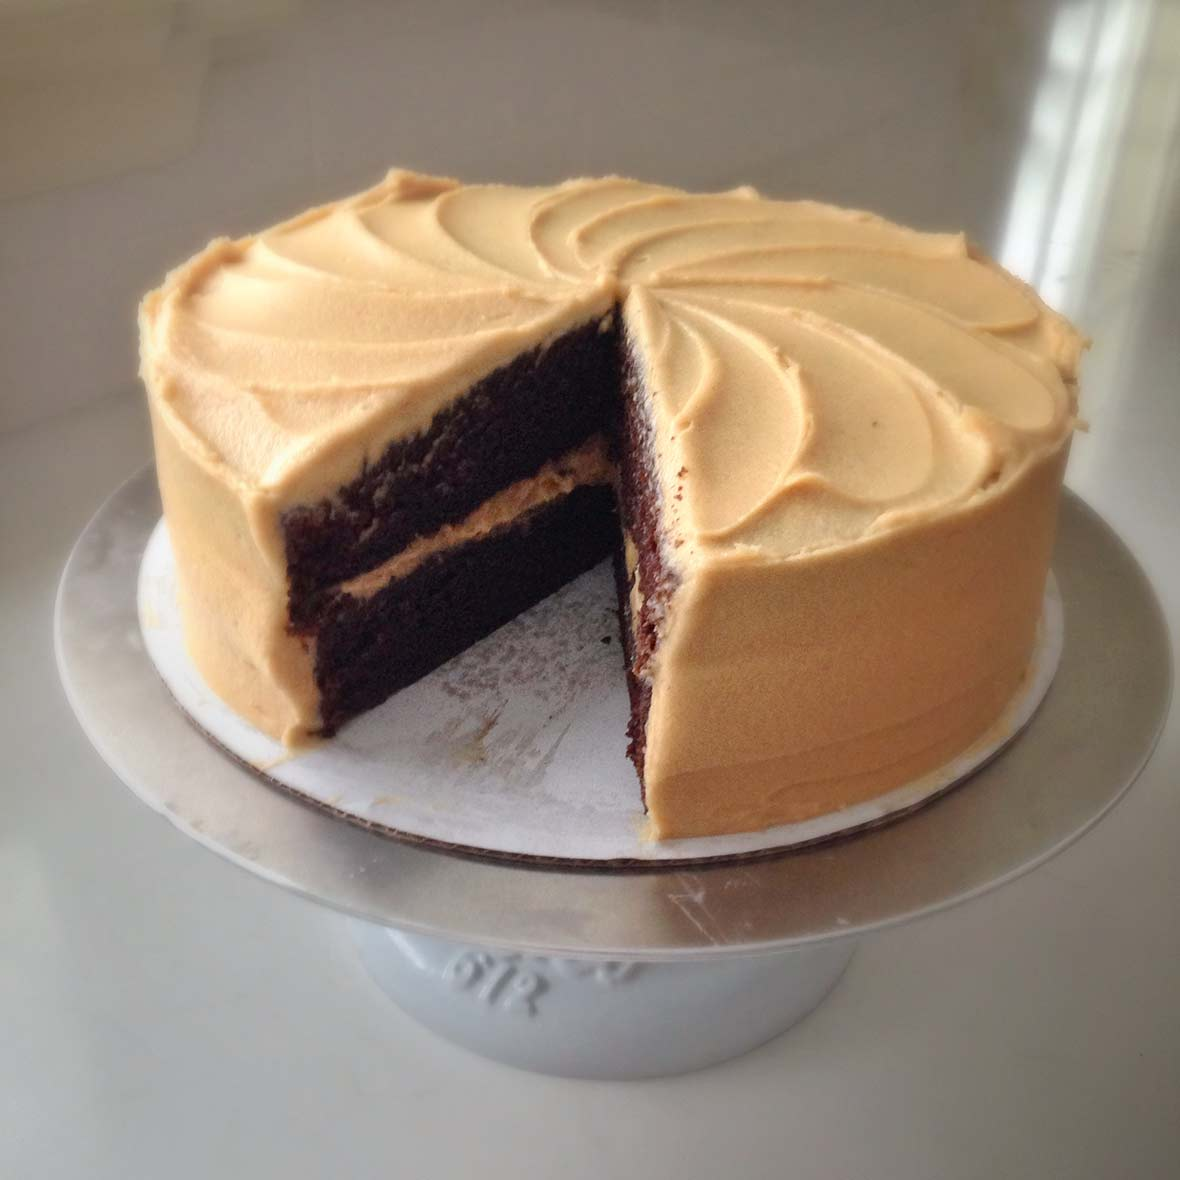 A sour cream mocha cake on a cake stand with one slice missing.